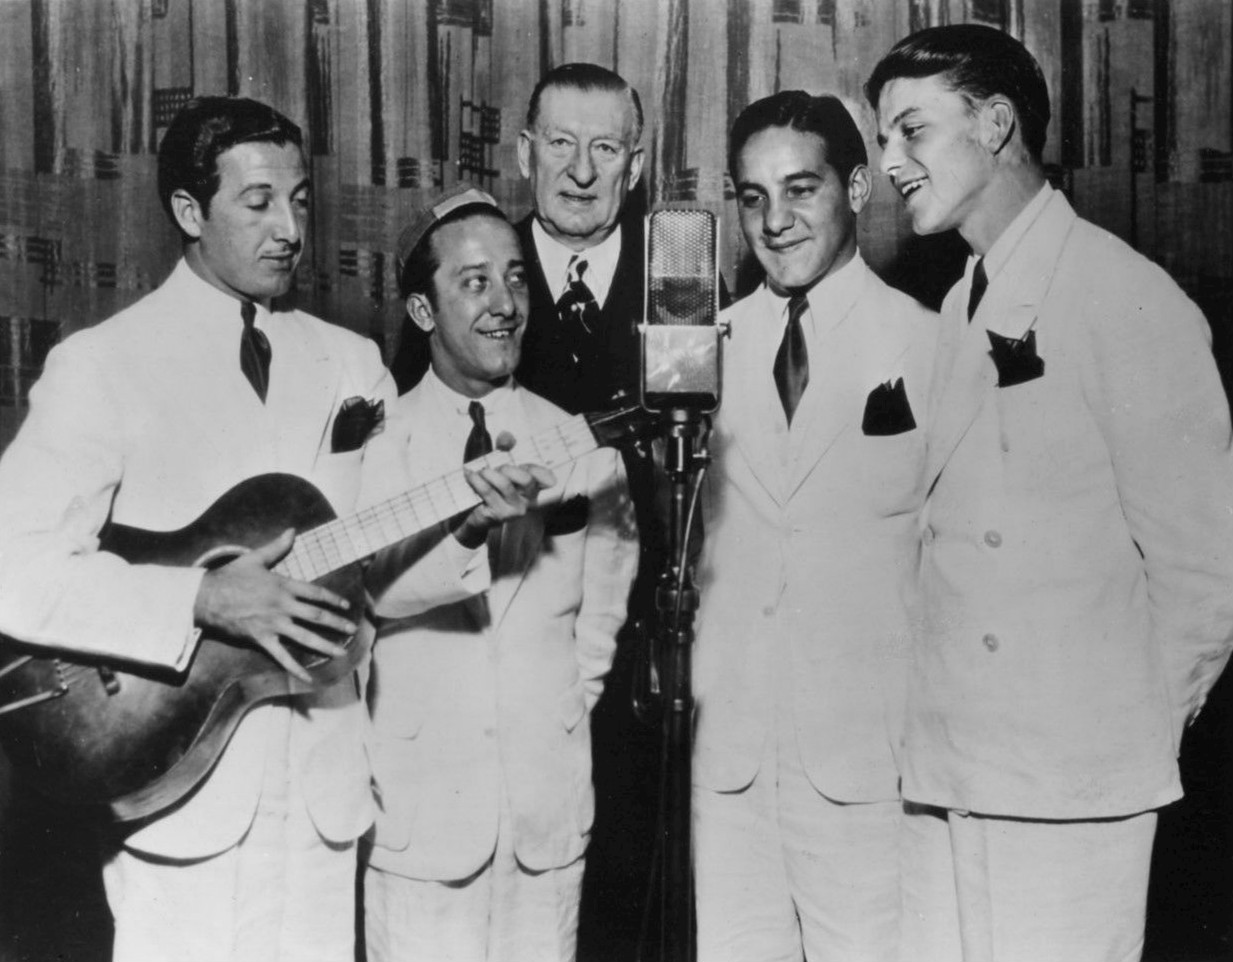 a look at francis albert and his group the hoboken four Francis albert sinatra[a] was born on december 12, 1915, in an upstairs tenement at 415 monroe street in hoboken four and harry james (1935-1939)edit sinatra (far right) with the hoboken four on major bowes' he became known as swoonatra or the voice, and his fans sinatratics.